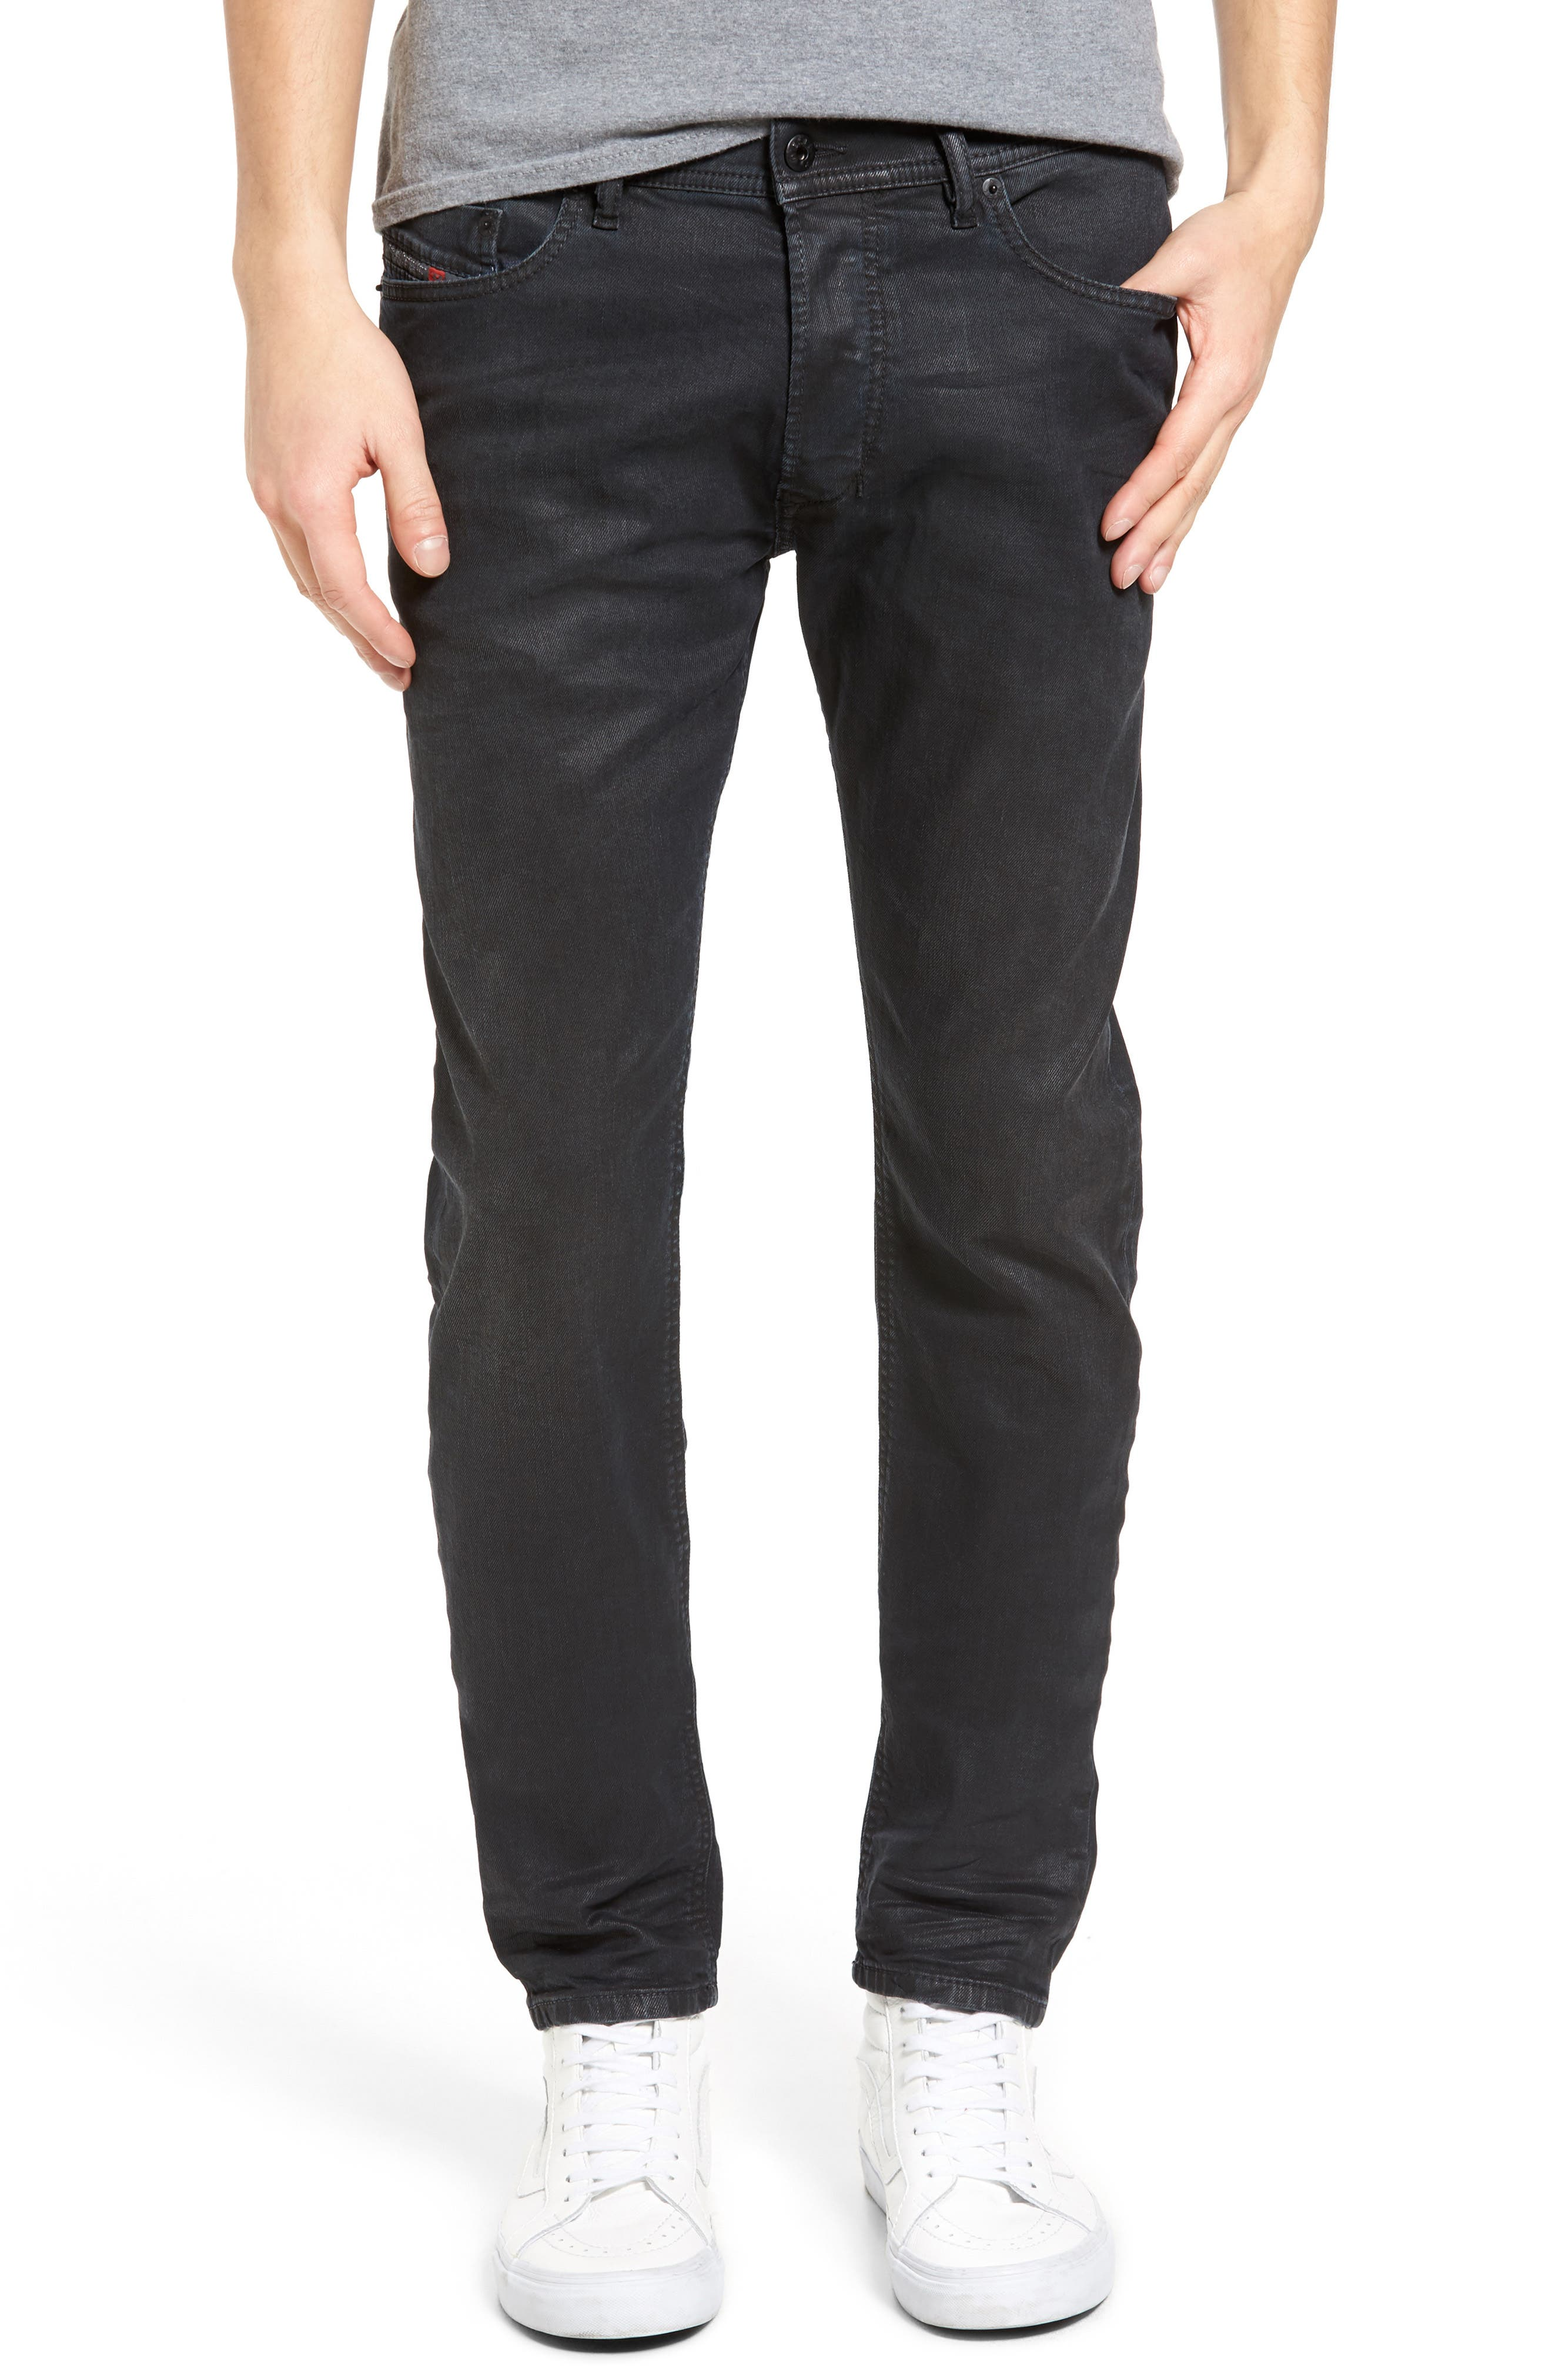 Tepphar Skinny Fit Jeans,                         Main,                         color, 001